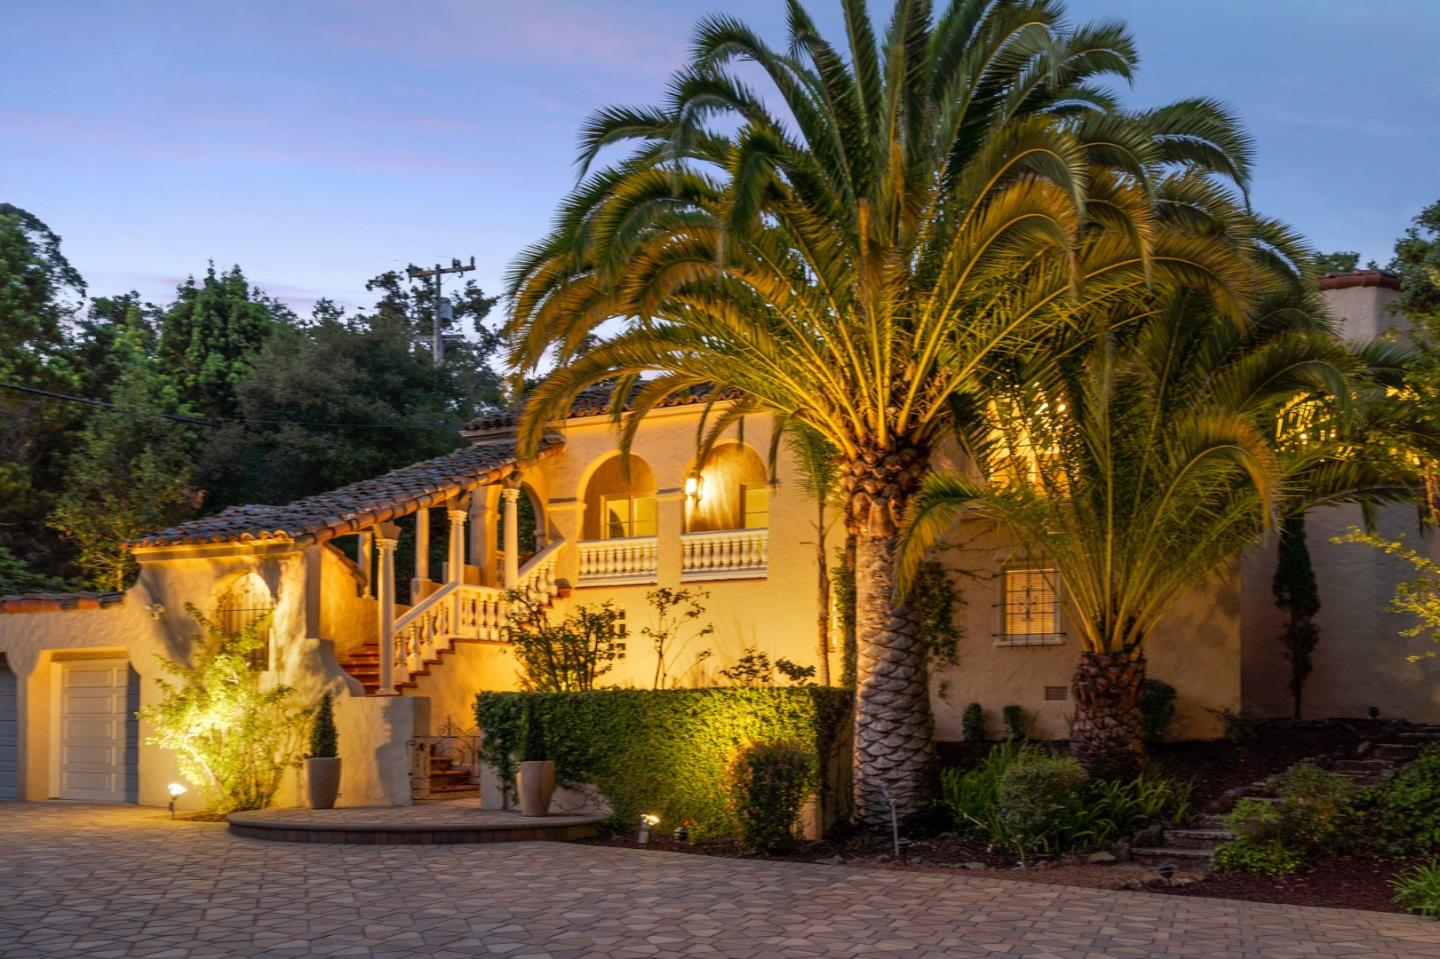 1930 Spanish Revival Private Retreat nestled in the Burlingame Hills Neighborhood.  Location is perfectly positioned between Silicon Valley, biotechnology center of the US in South San Francisco, 16 miles to downtown San Francisco and minutes to San Francisco International Airport. This 5 bedroom home on a 24,698 sq ft lot surrounded by 9 mature oak trees, stunning palm trees and a creek that runs year round along with multiple outdoor decks, views of canyon, gazebo, outdoor fireplace, pergola covered sitting area and a covered patio with original artist paint style resembling a Spanish Hacienda is one of a kind to entertain and enjoy all year round. Downstairs you will find great sq. footage needed in today's options of work from home and distance learning.  There are two bedrooms/bonus rooms/office space  for you to choose what works best for your needs.Top rated Burlingame Schools, walking distance to Hoover Elementary plus a 5-minute drive to charming downtown Burlingame Avenue.